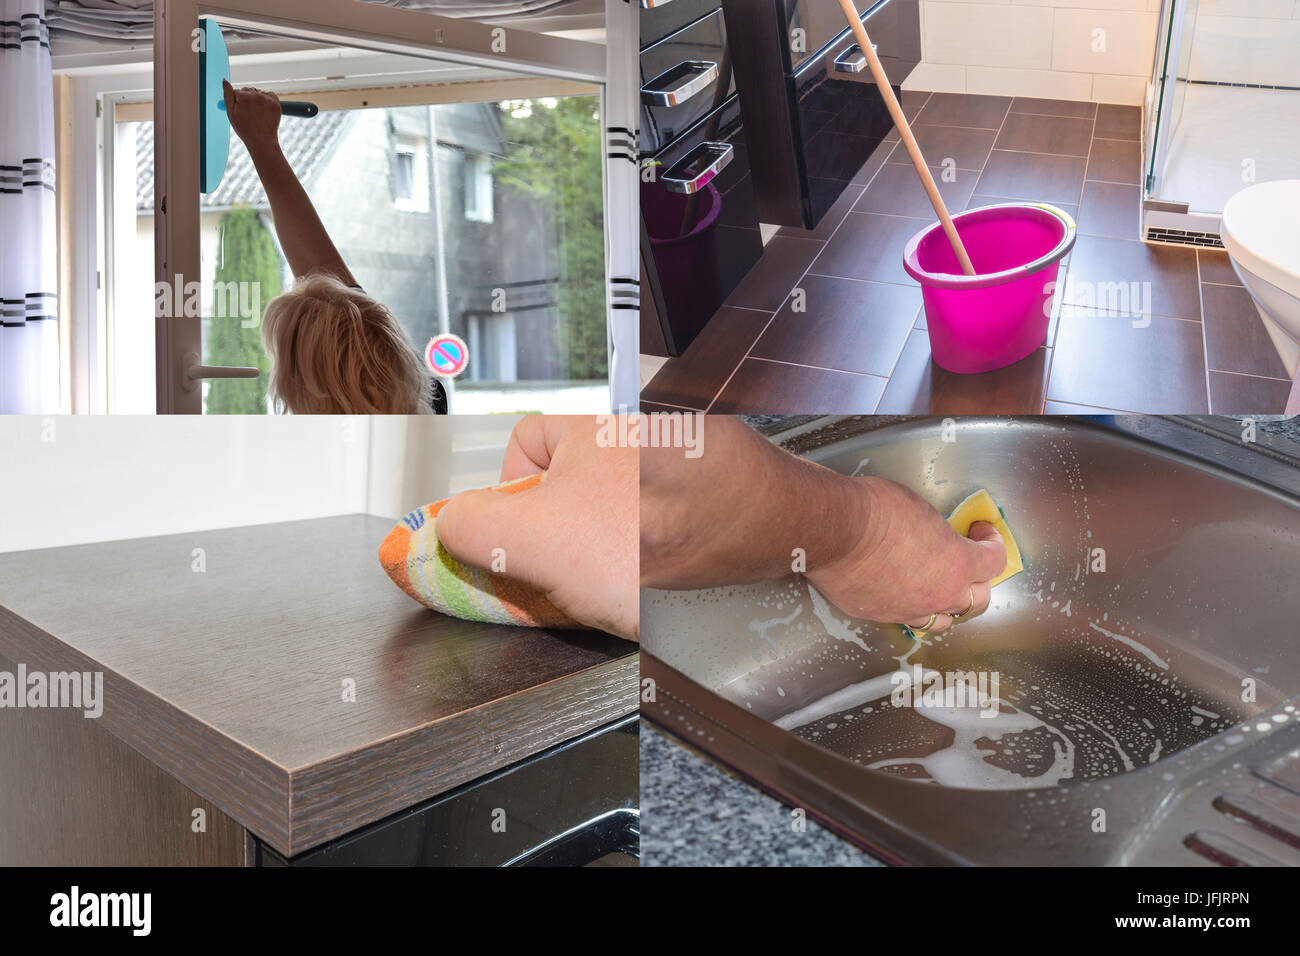 Image is divided into 4 sections about housework - Stock Image